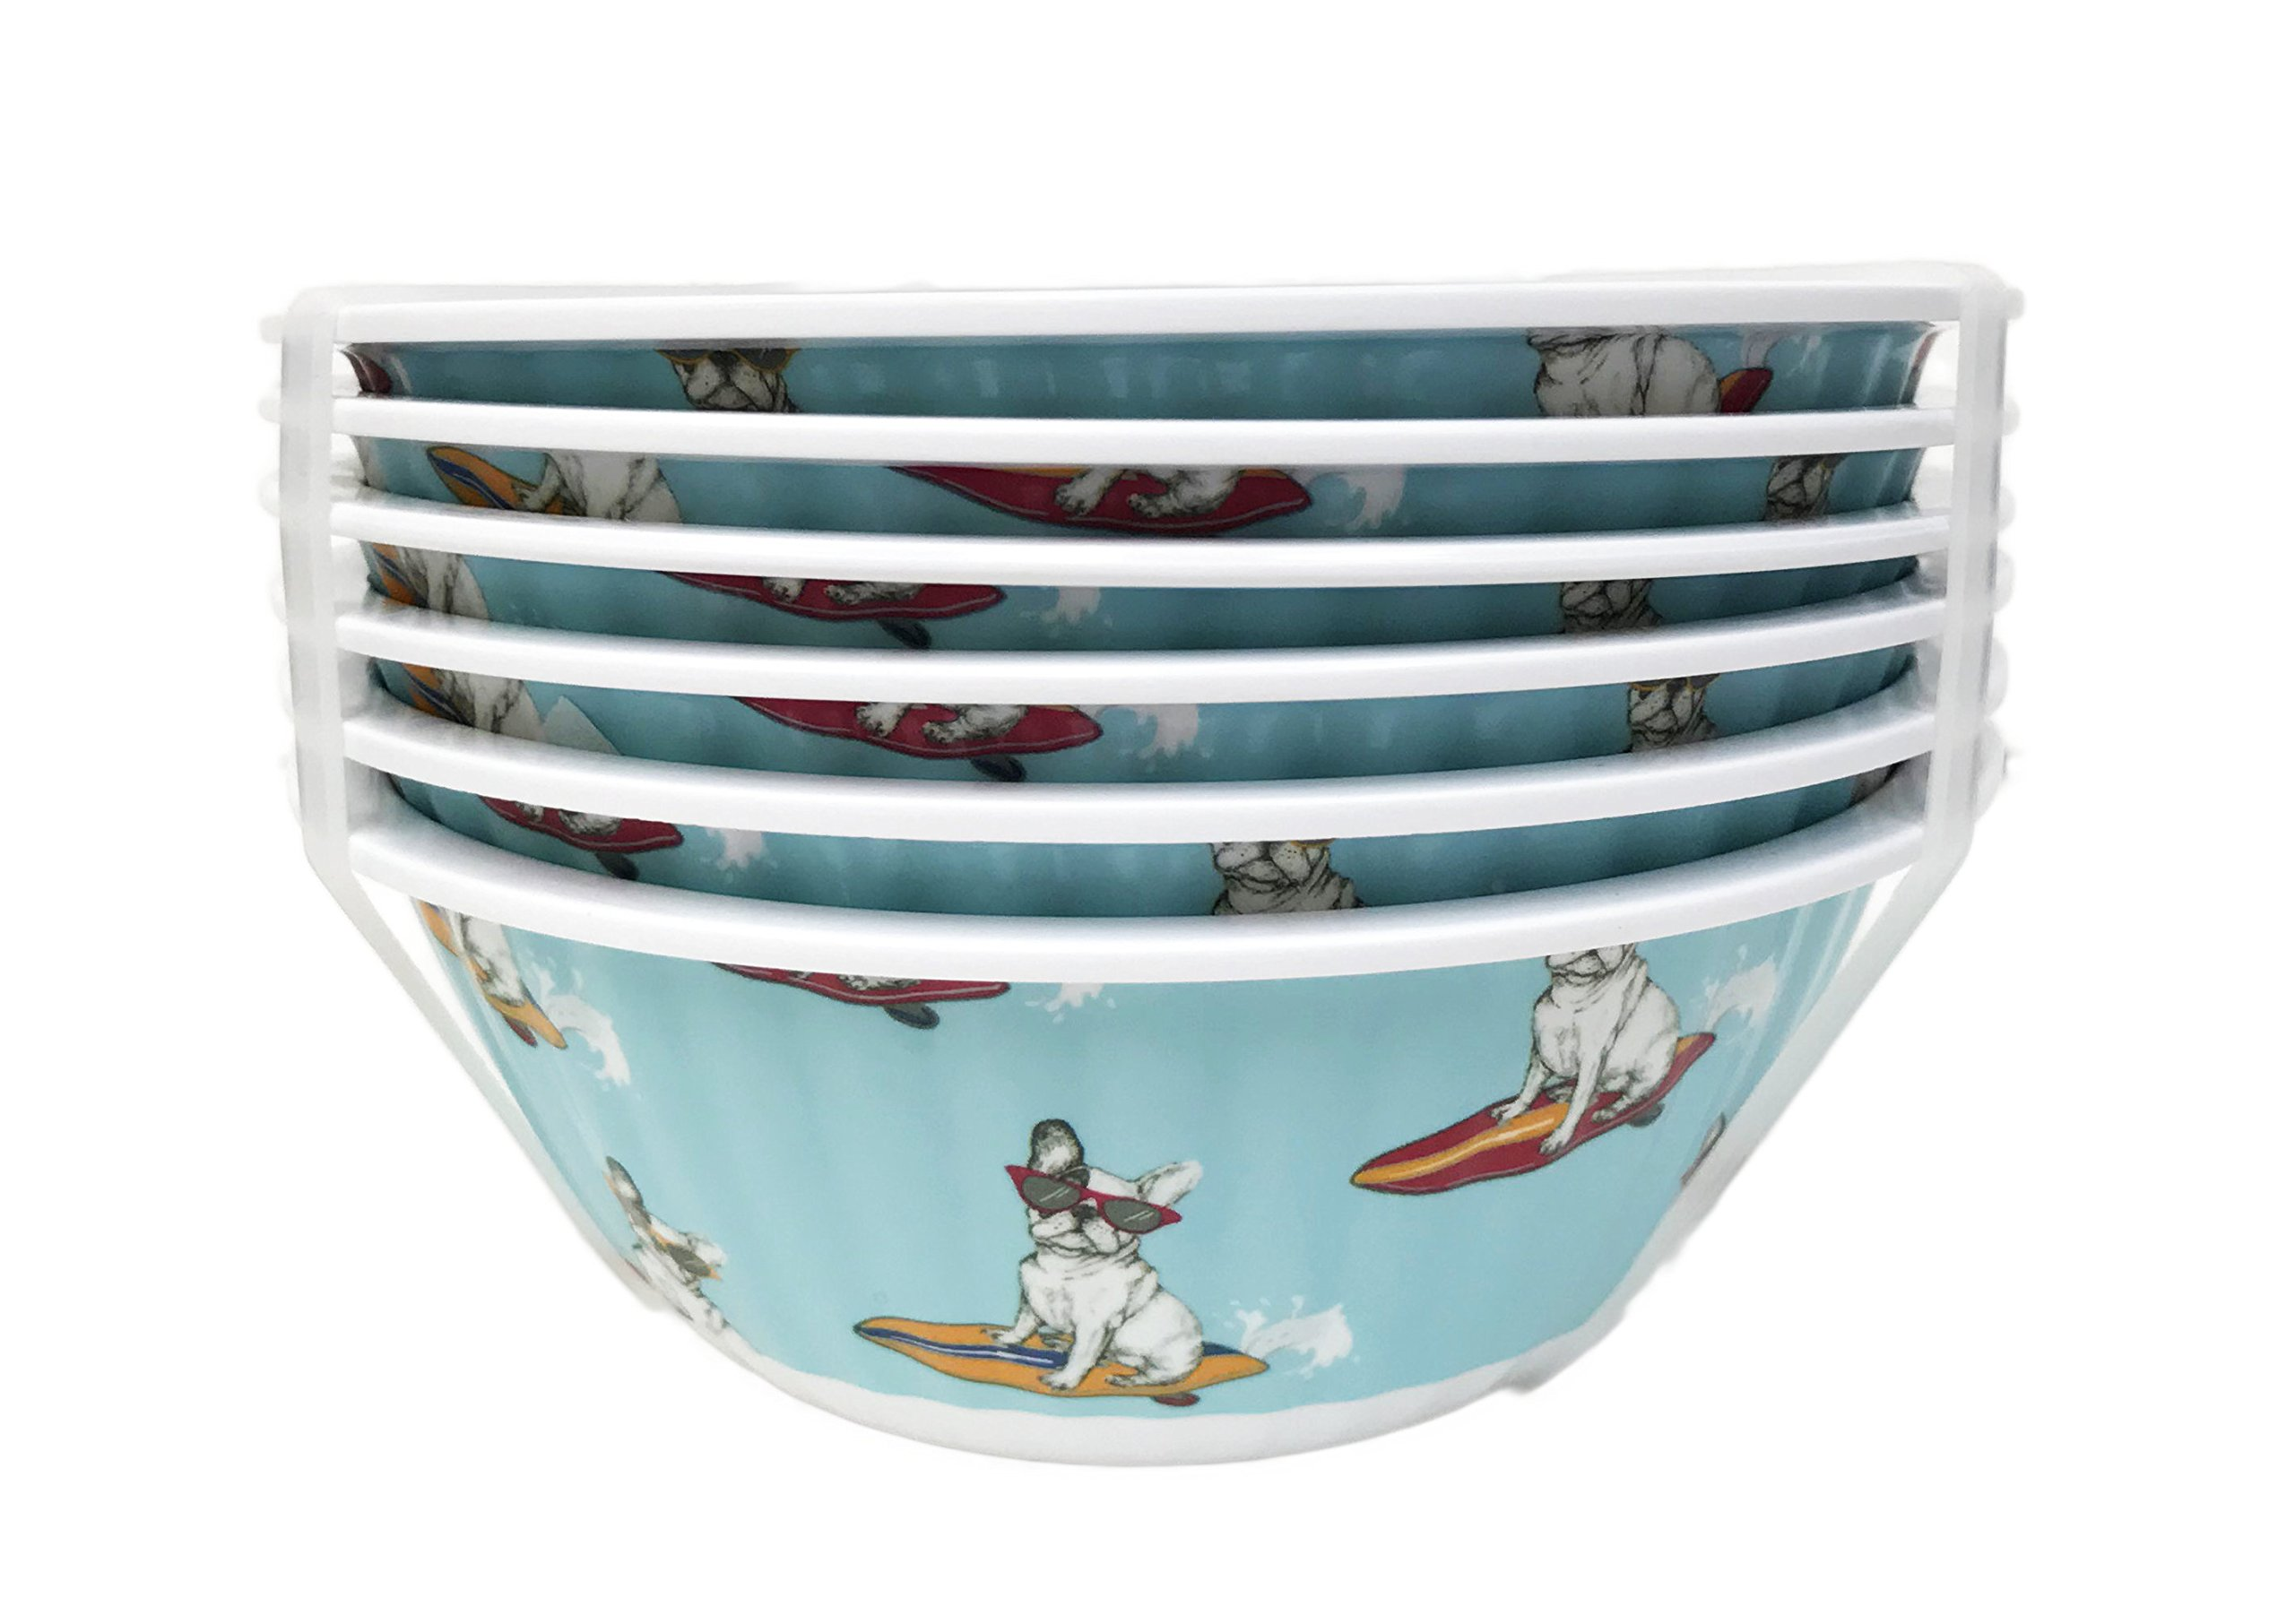 Surfing French Bulldog Sporting Cool Sunglasses Set of 6 Melamine Dipping Appetizer Snack Dessert Bowls